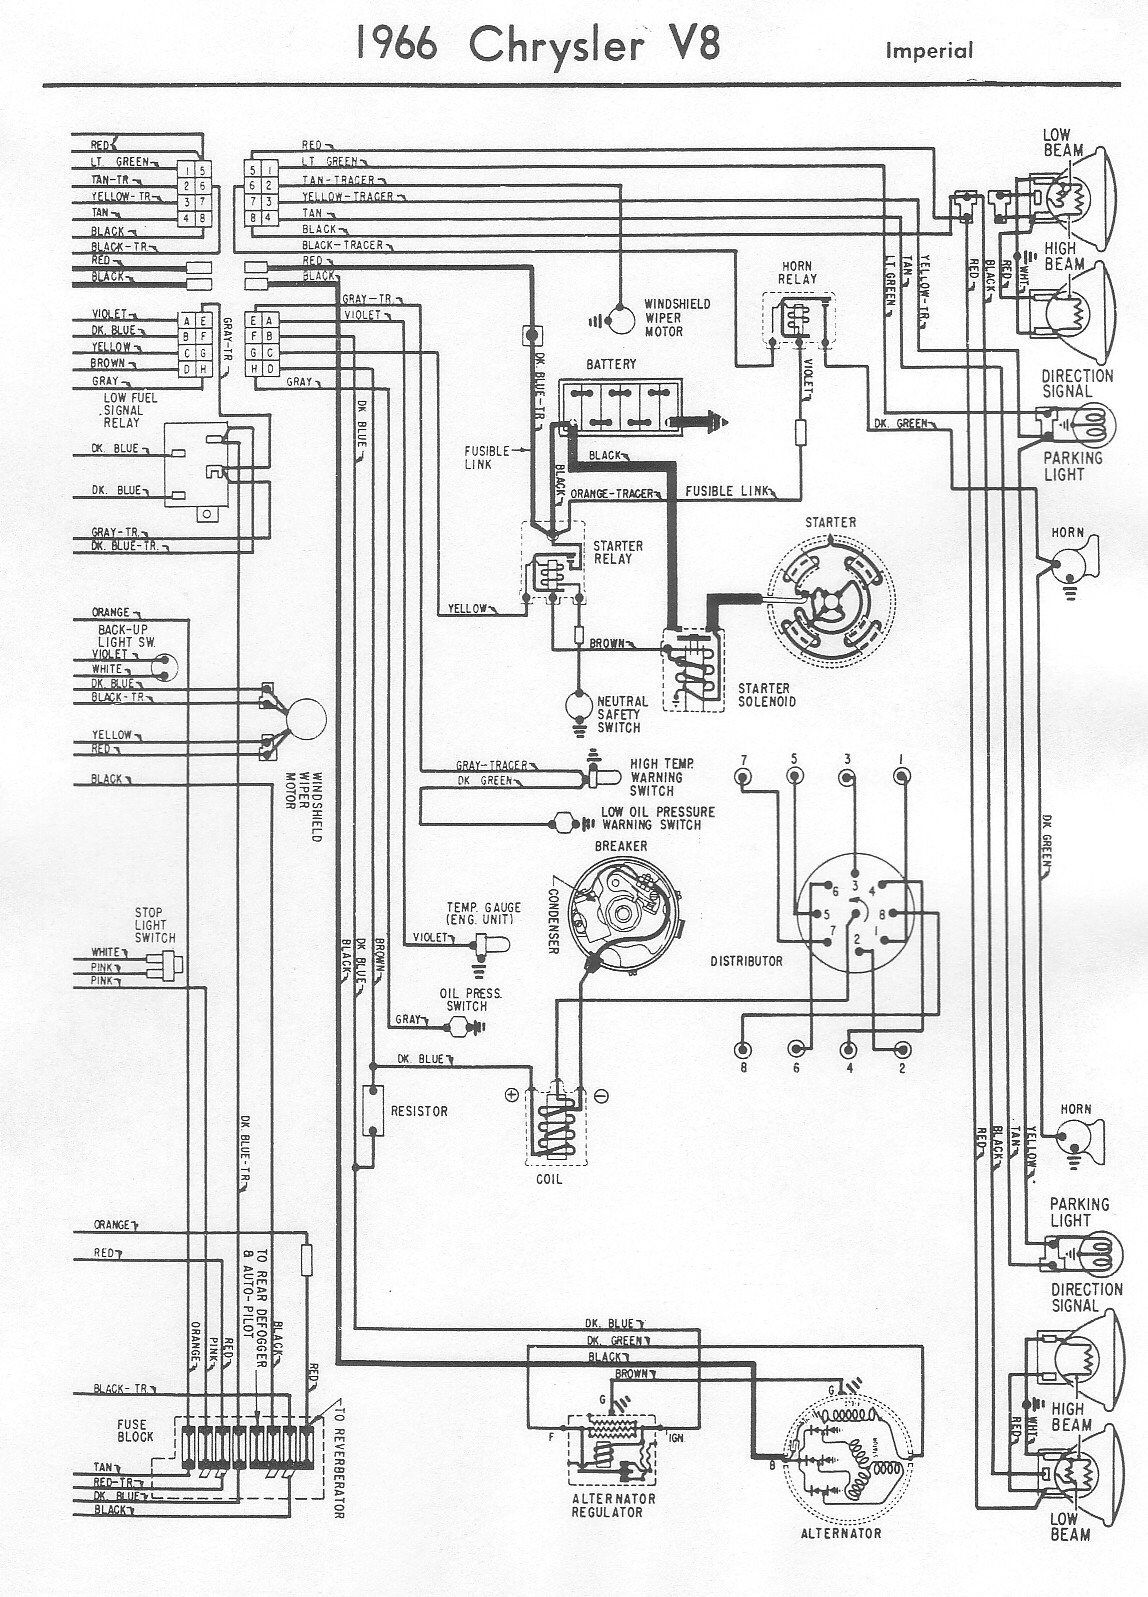 1968 Gtx Wiring Diagram - Wiring Diagram Online  Plymouth Wiring Diagram on plymouth parts diagrams, plymouth interior diagrams, plymouth transmission diagrams, plymouth engine,